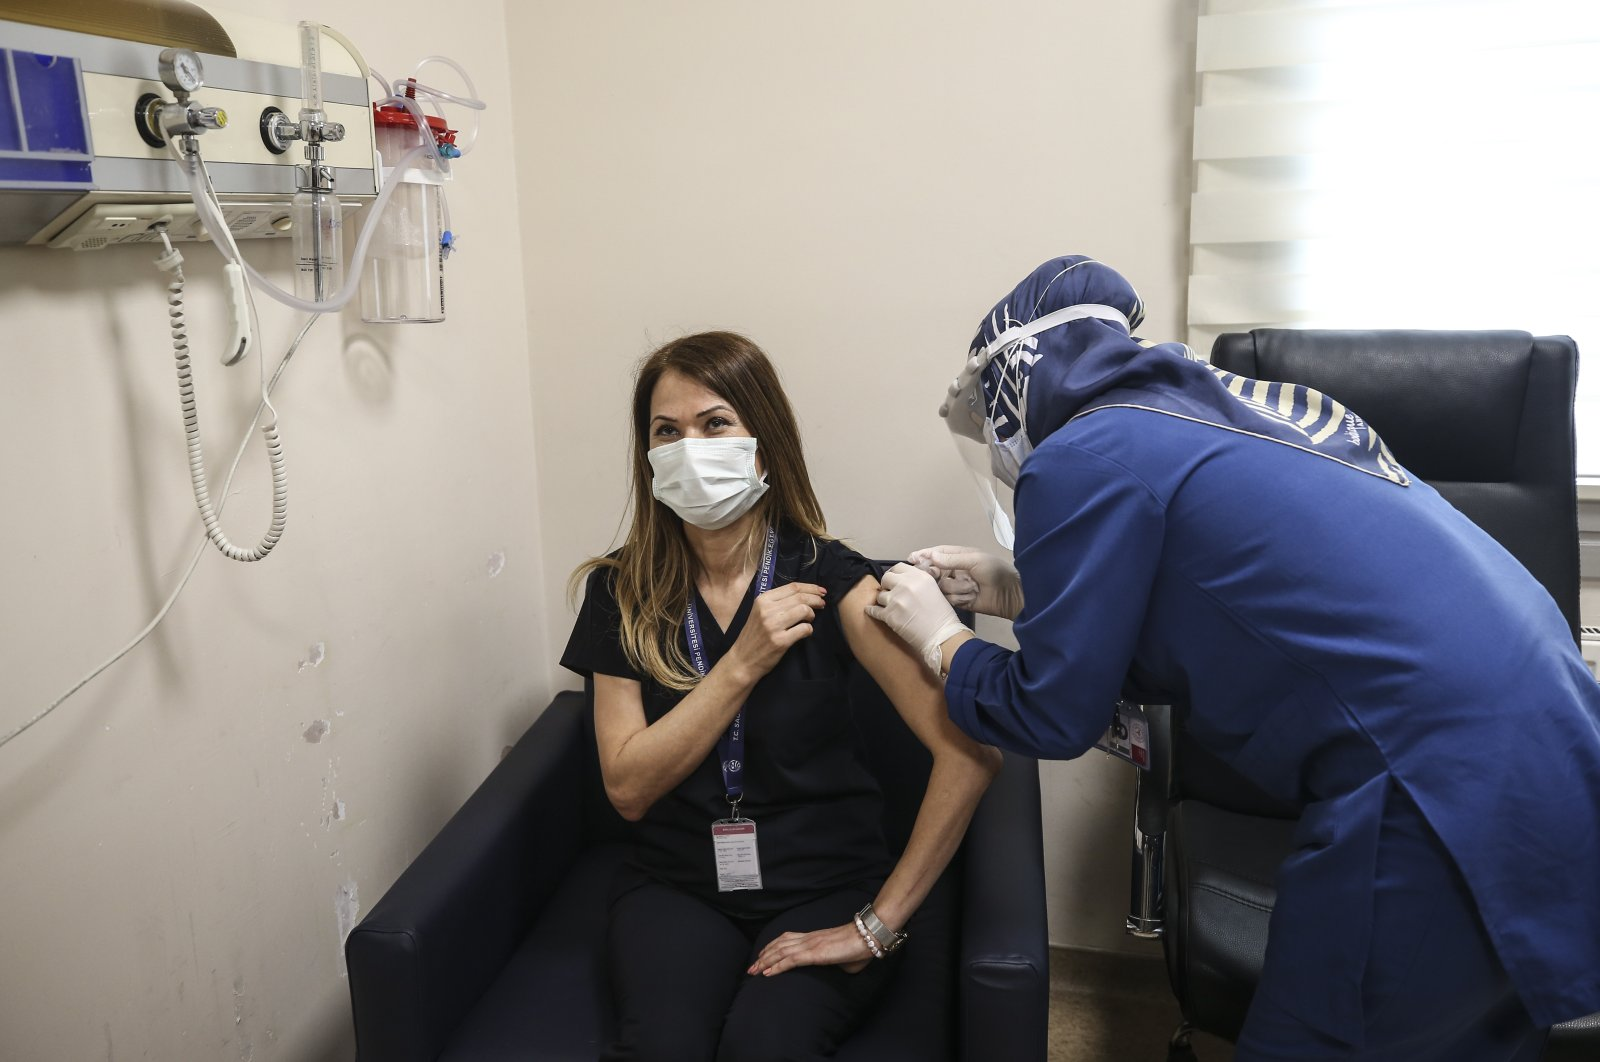 A nurse administers a dose of the vaccine to health care worker Fatma Çırpı at a hospital in Istanbul, Turkey, Jan. 14, 2021. (AP Photo)